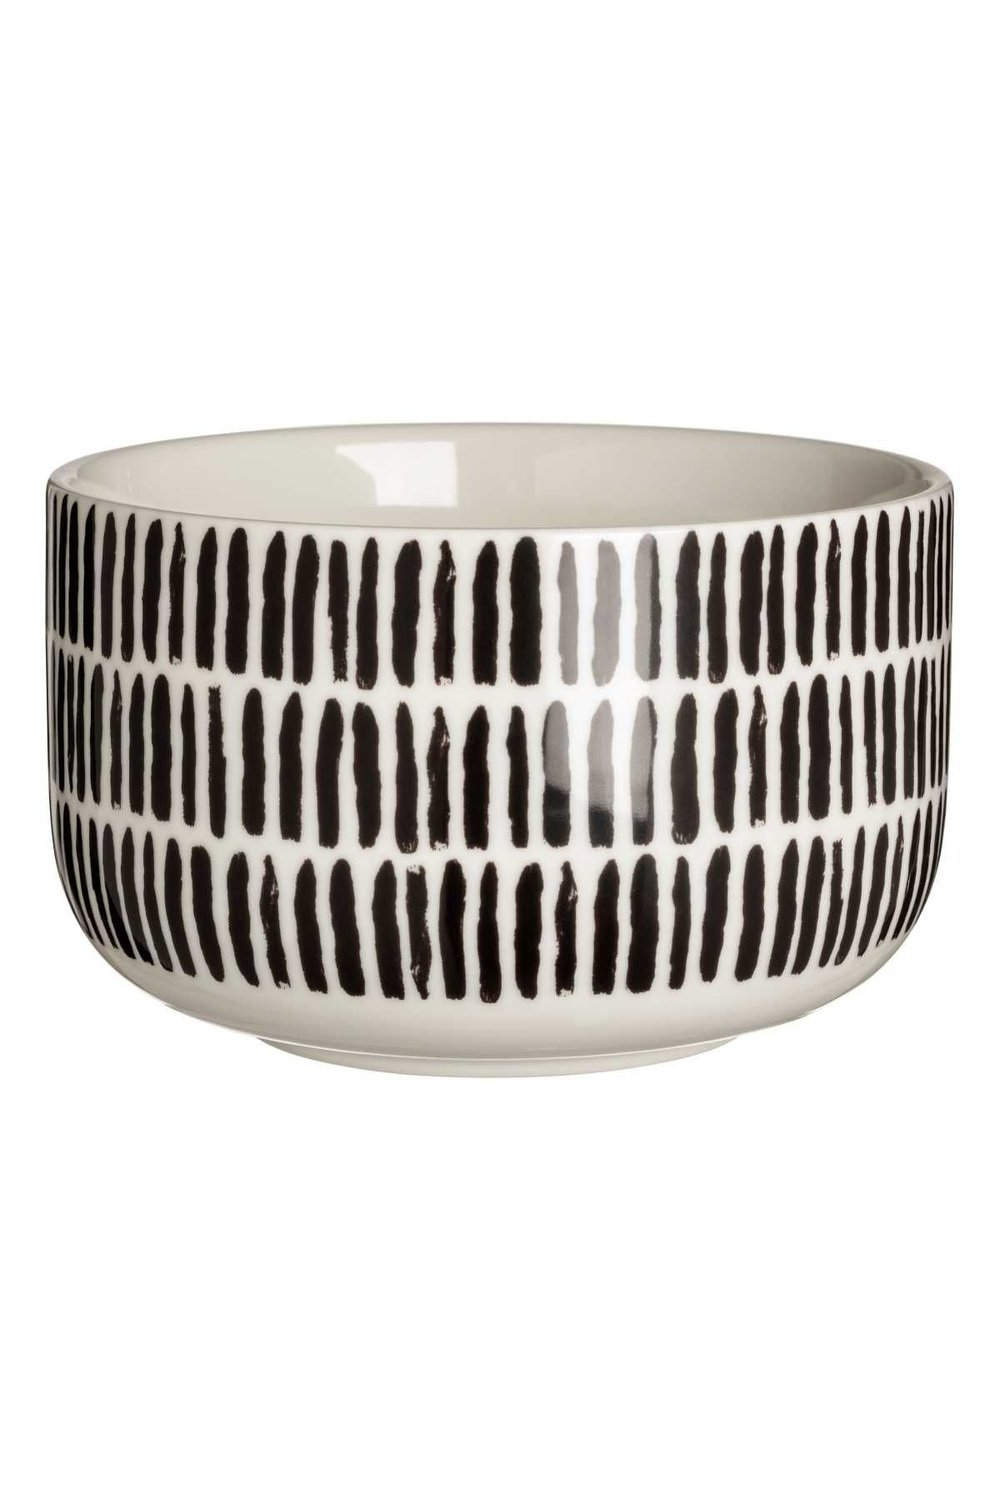 Black and White Bowl, H&M $5.99